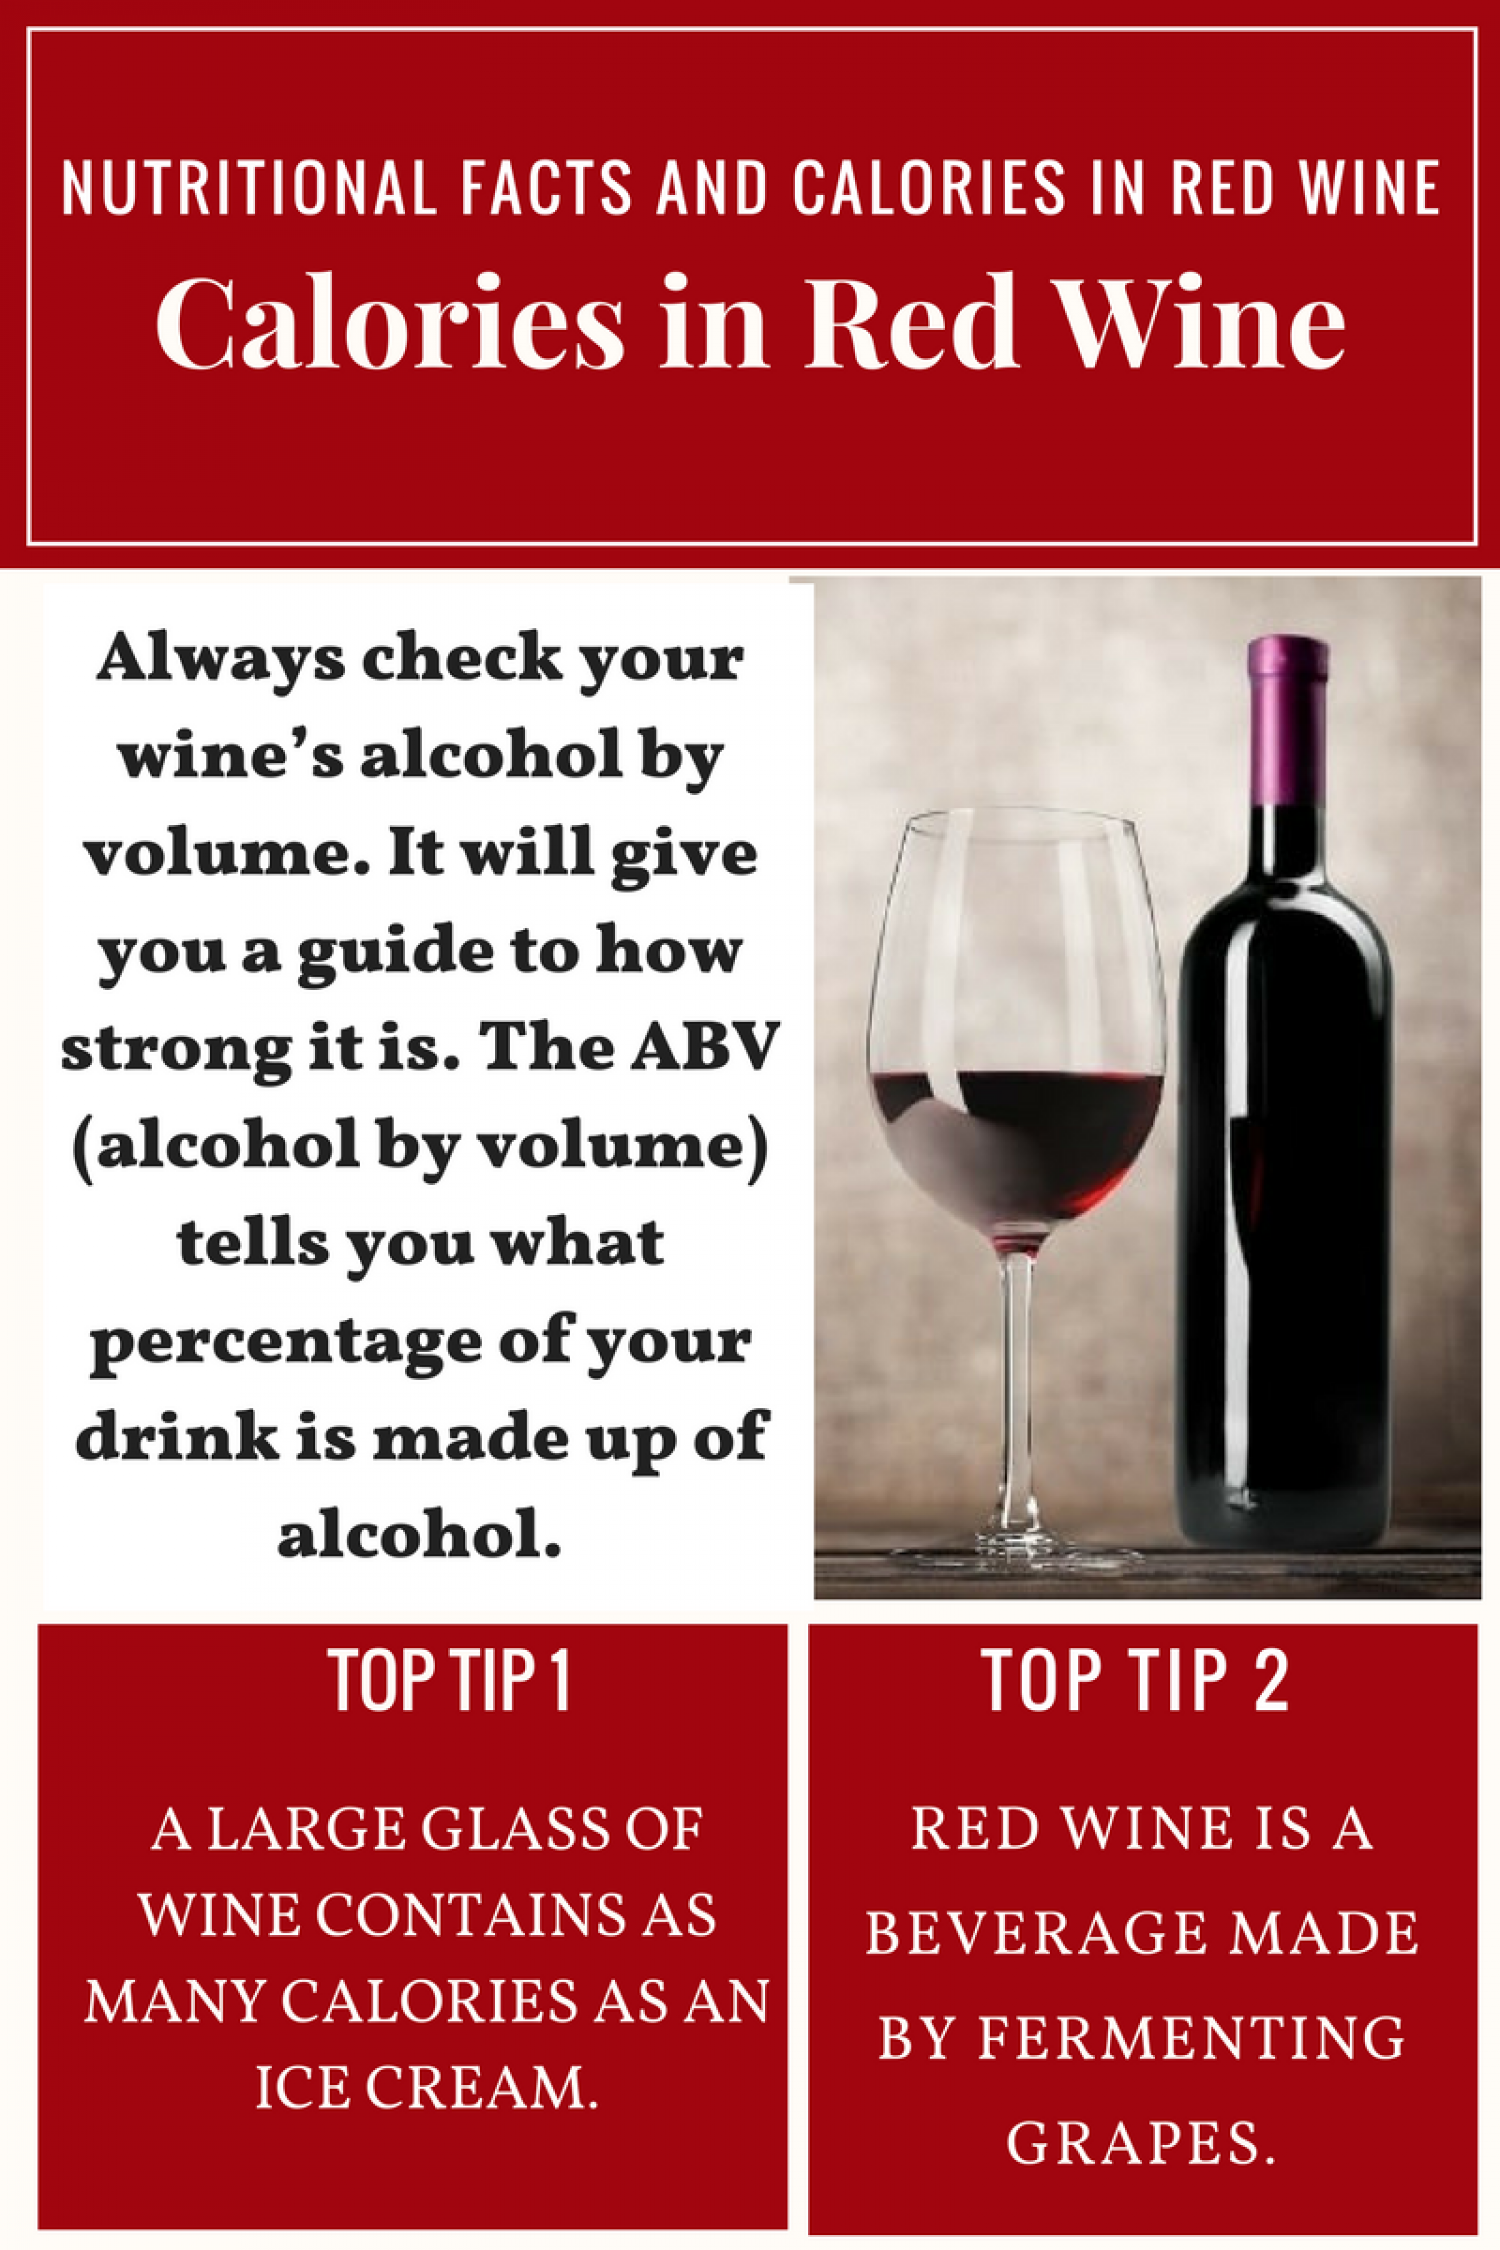 Calories in Red Wine Infographic